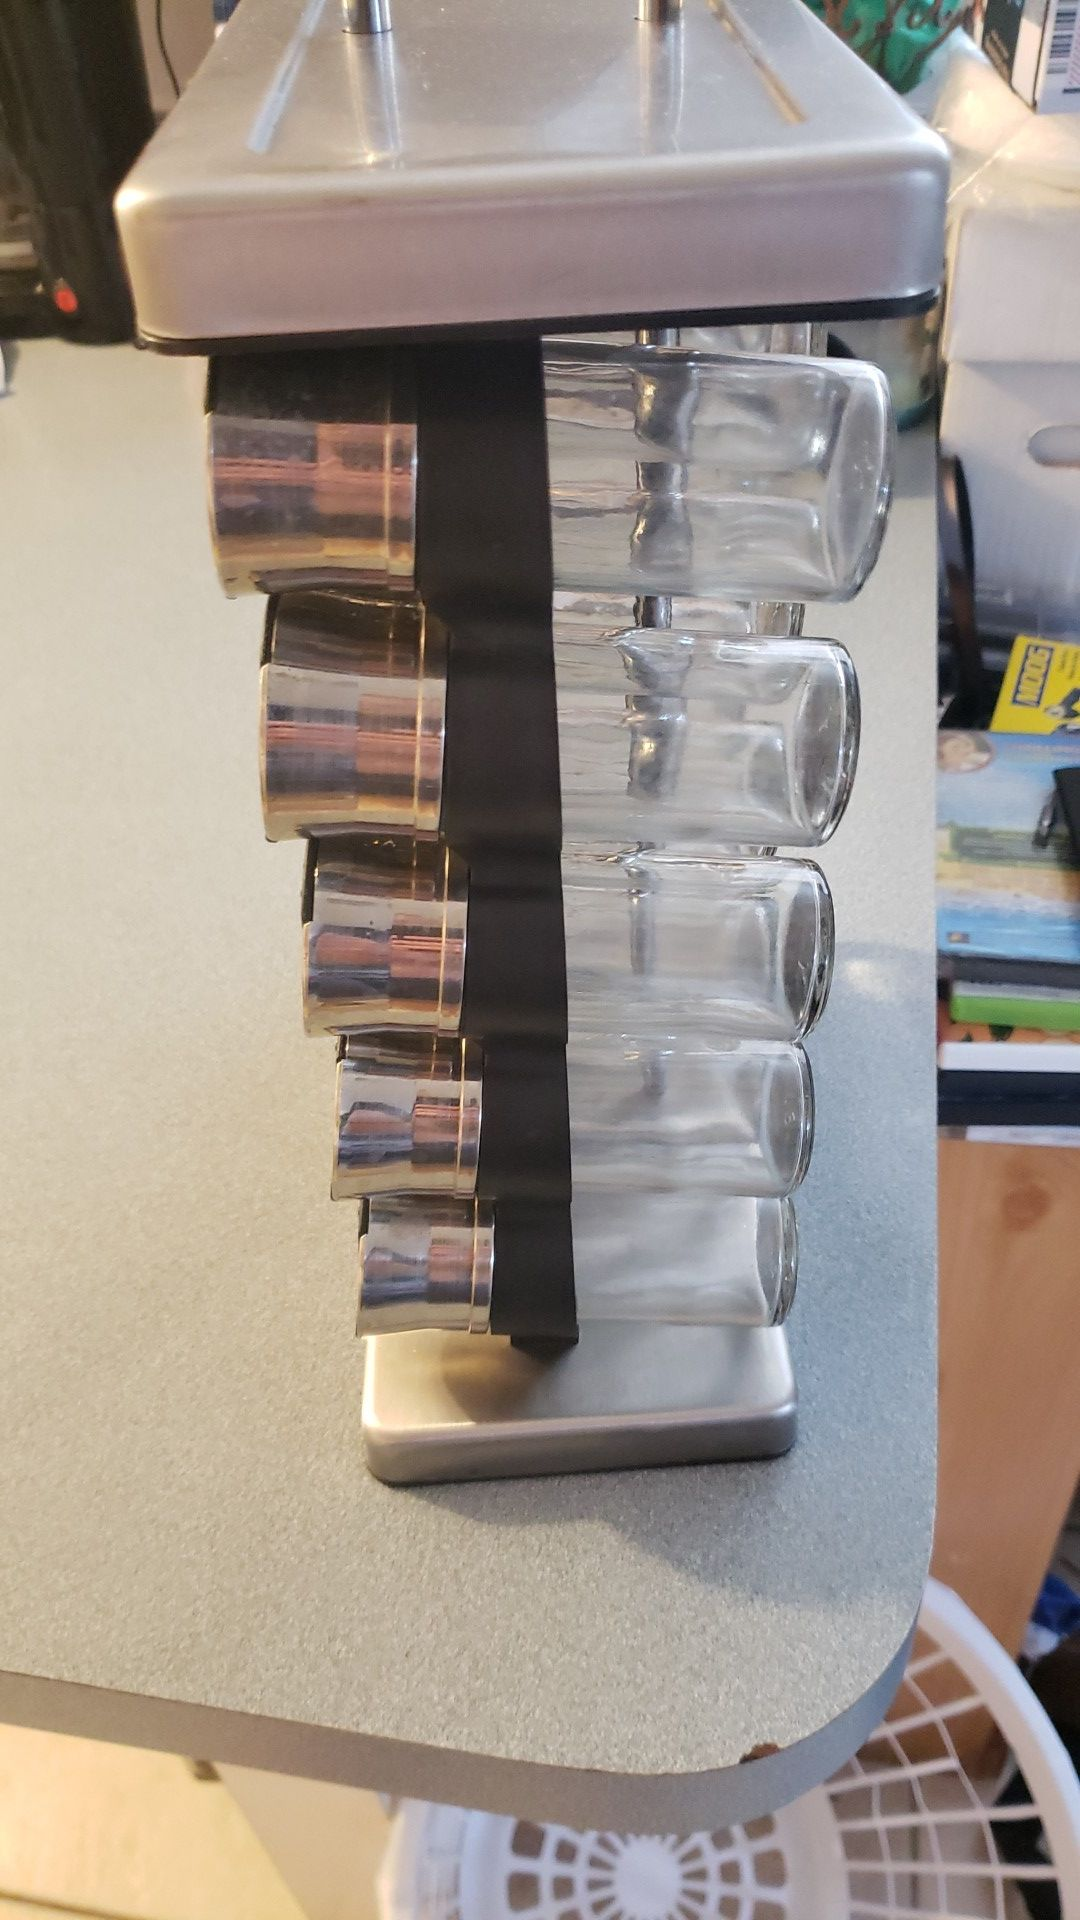 Spice rack with labeled glass jars